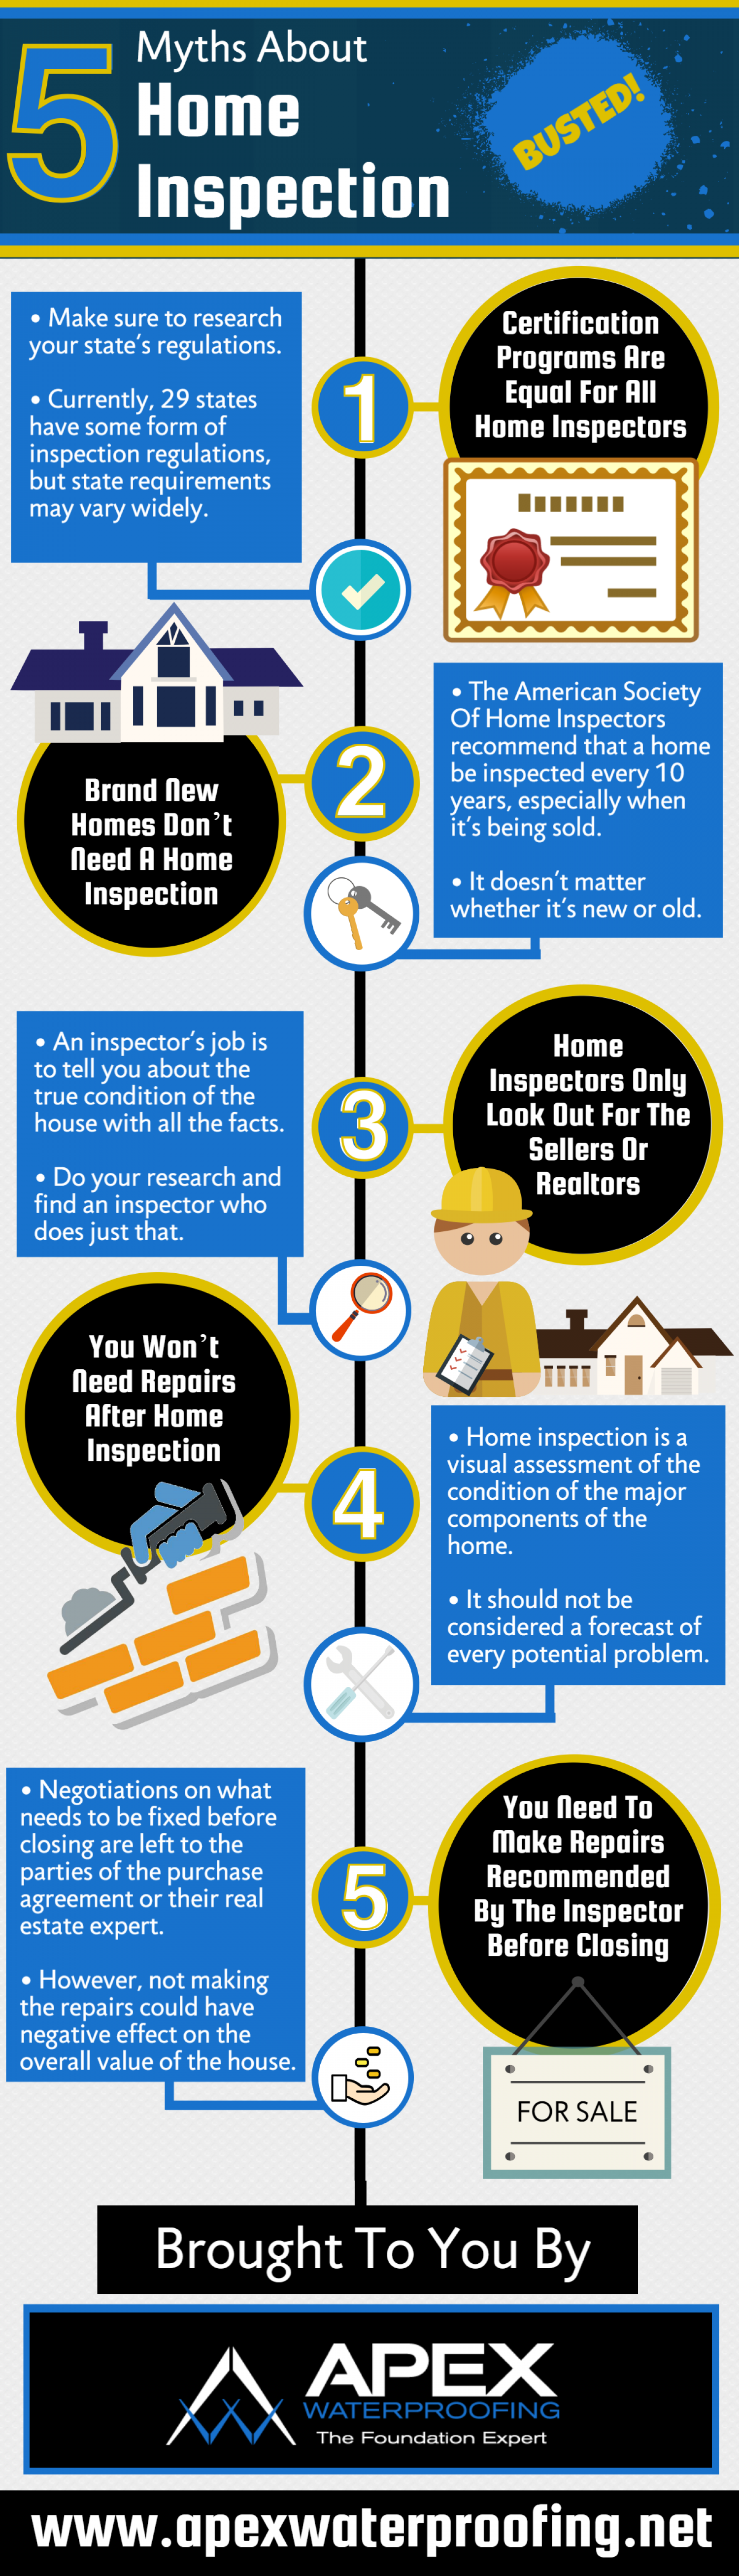 5 myths about home inspection | Apexwaterproofing.net Infographic